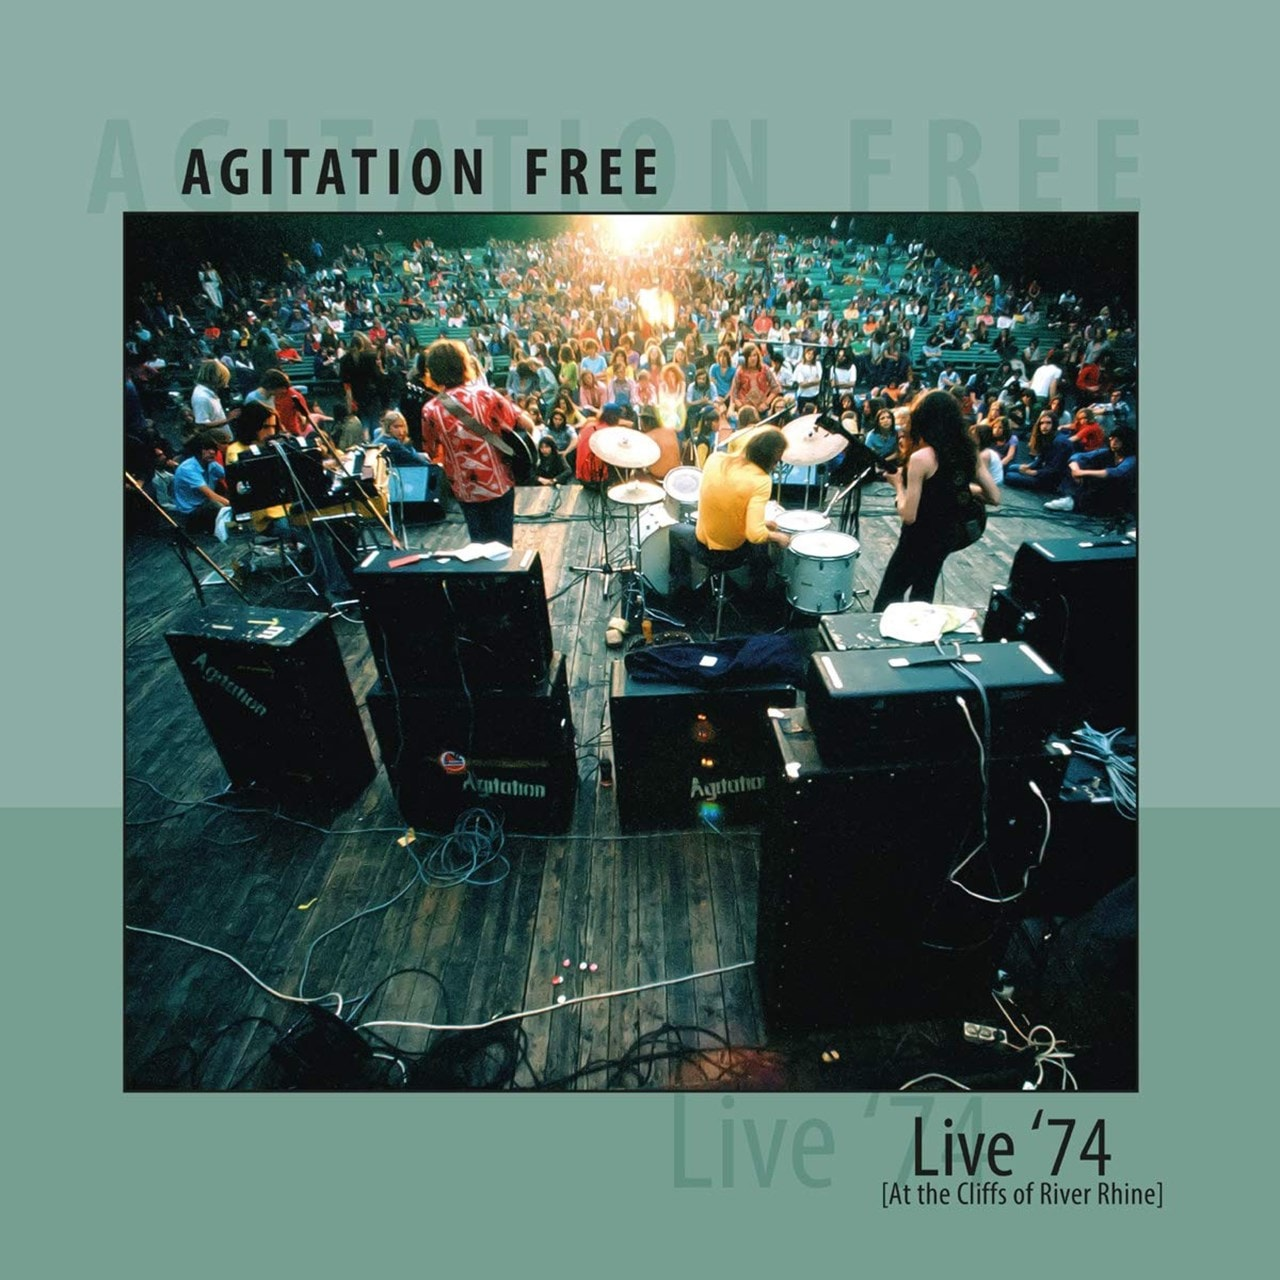 Live '74 (At the Cliffs of River Rhine) - 1